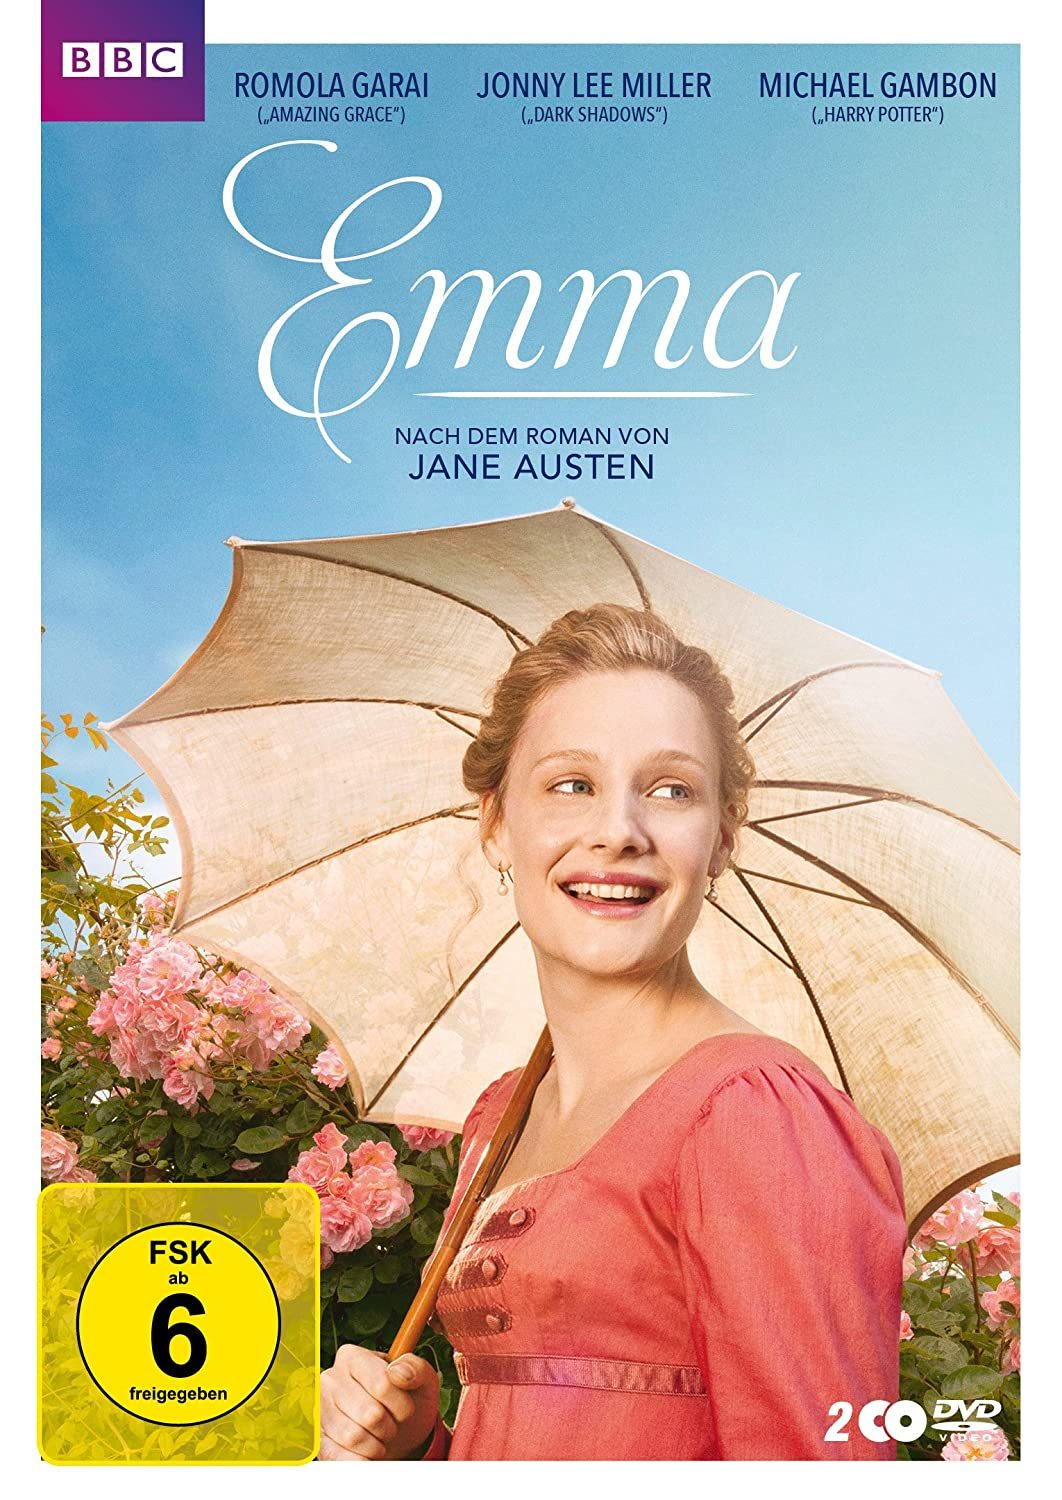 Image of Emma (2009)